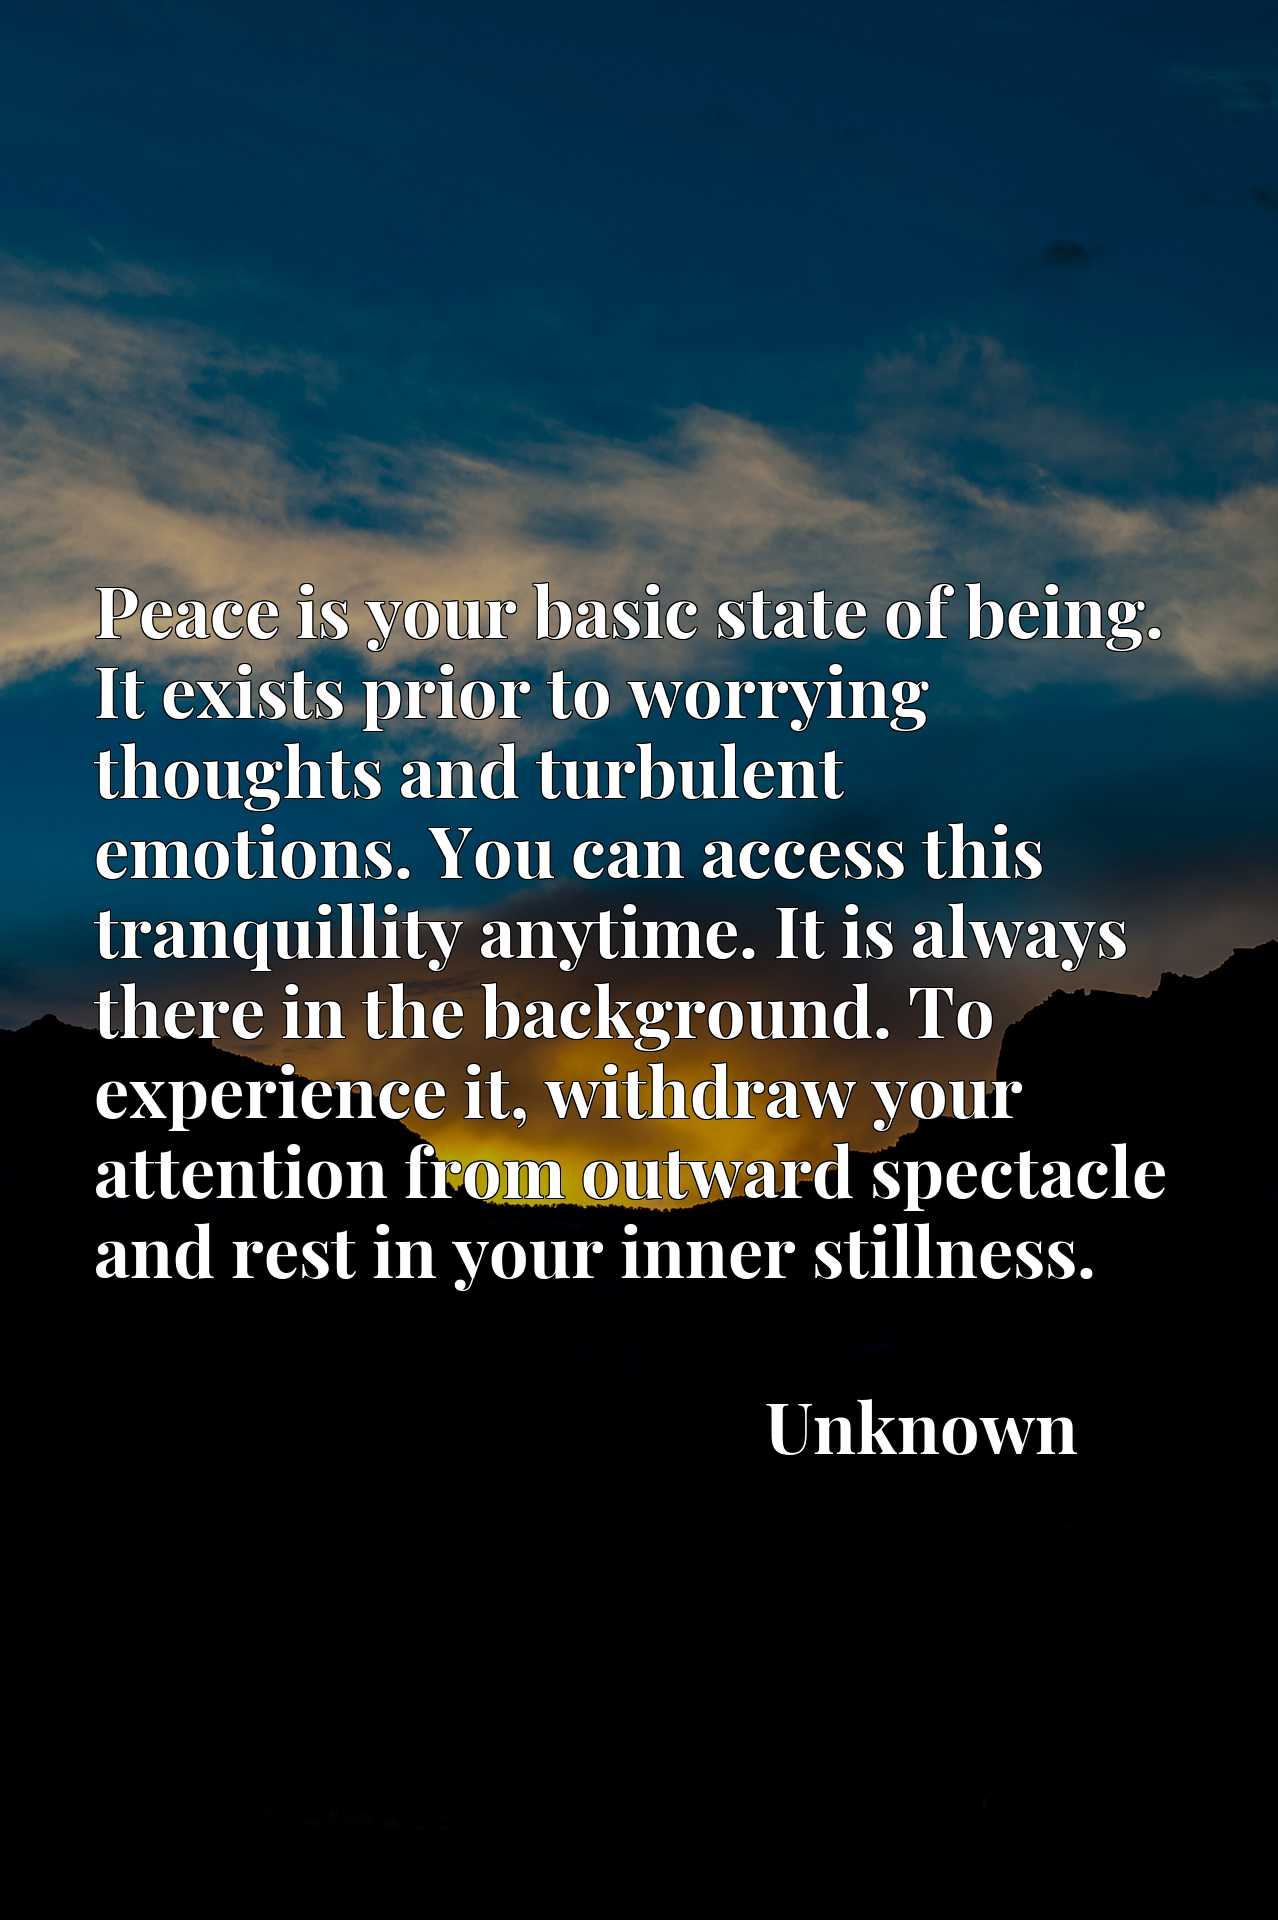 Peace is your basic state of being. It exists prior to worrying thoughts and turbulent emotions. You can access this tranquillity anytime. It is always there in the background. To experience it, withdraw your attention from outward spectacle and rest in your inner stillness.